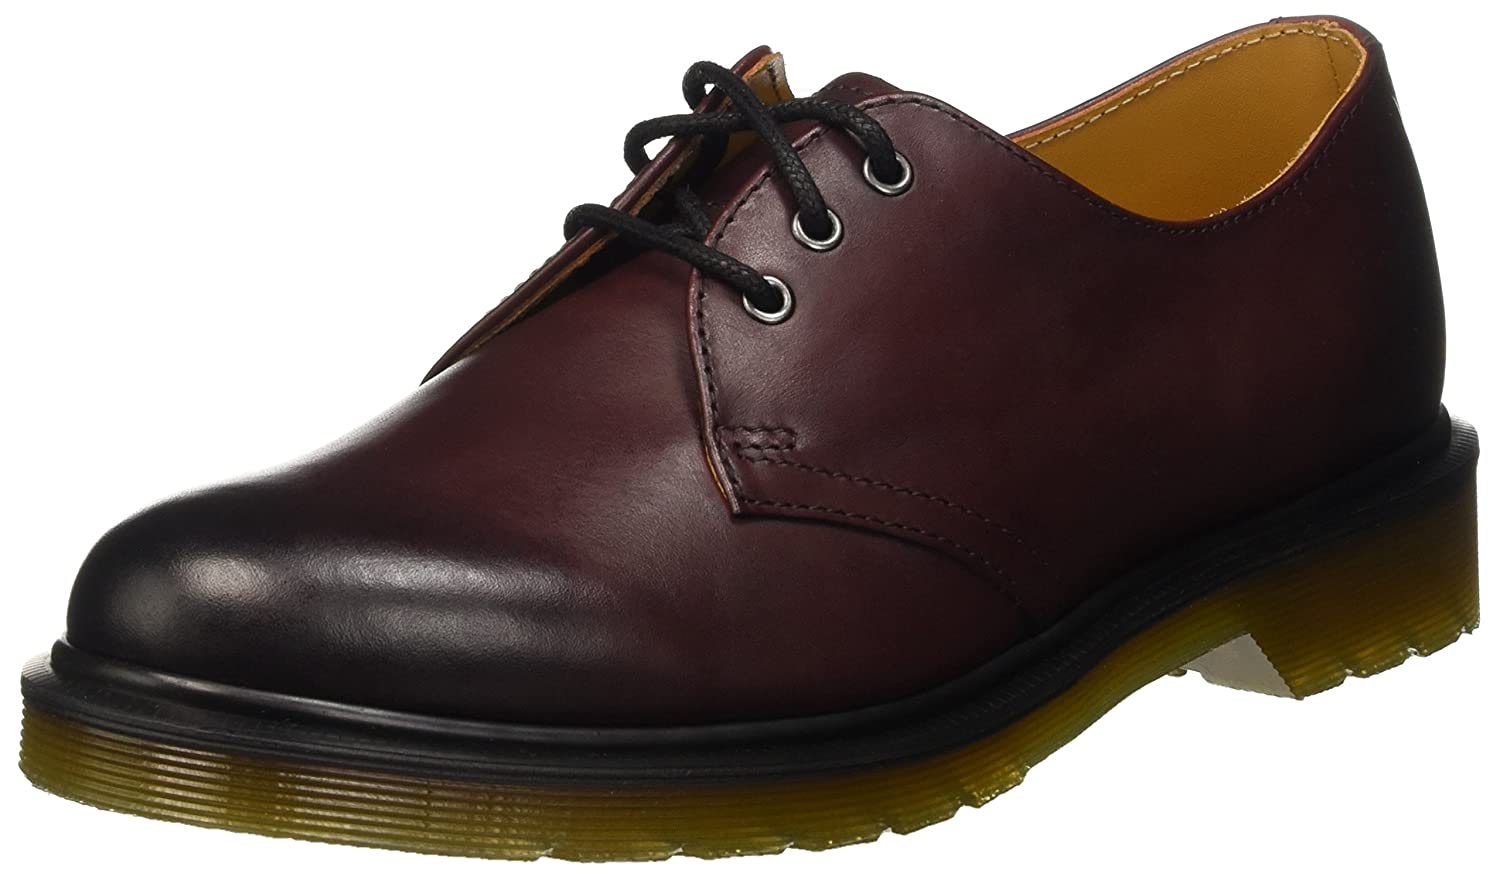 TALLA 36 EU. Dr. Martens 1461 Cherry Red Antique Temperley, Mocasines Unisex Adulto